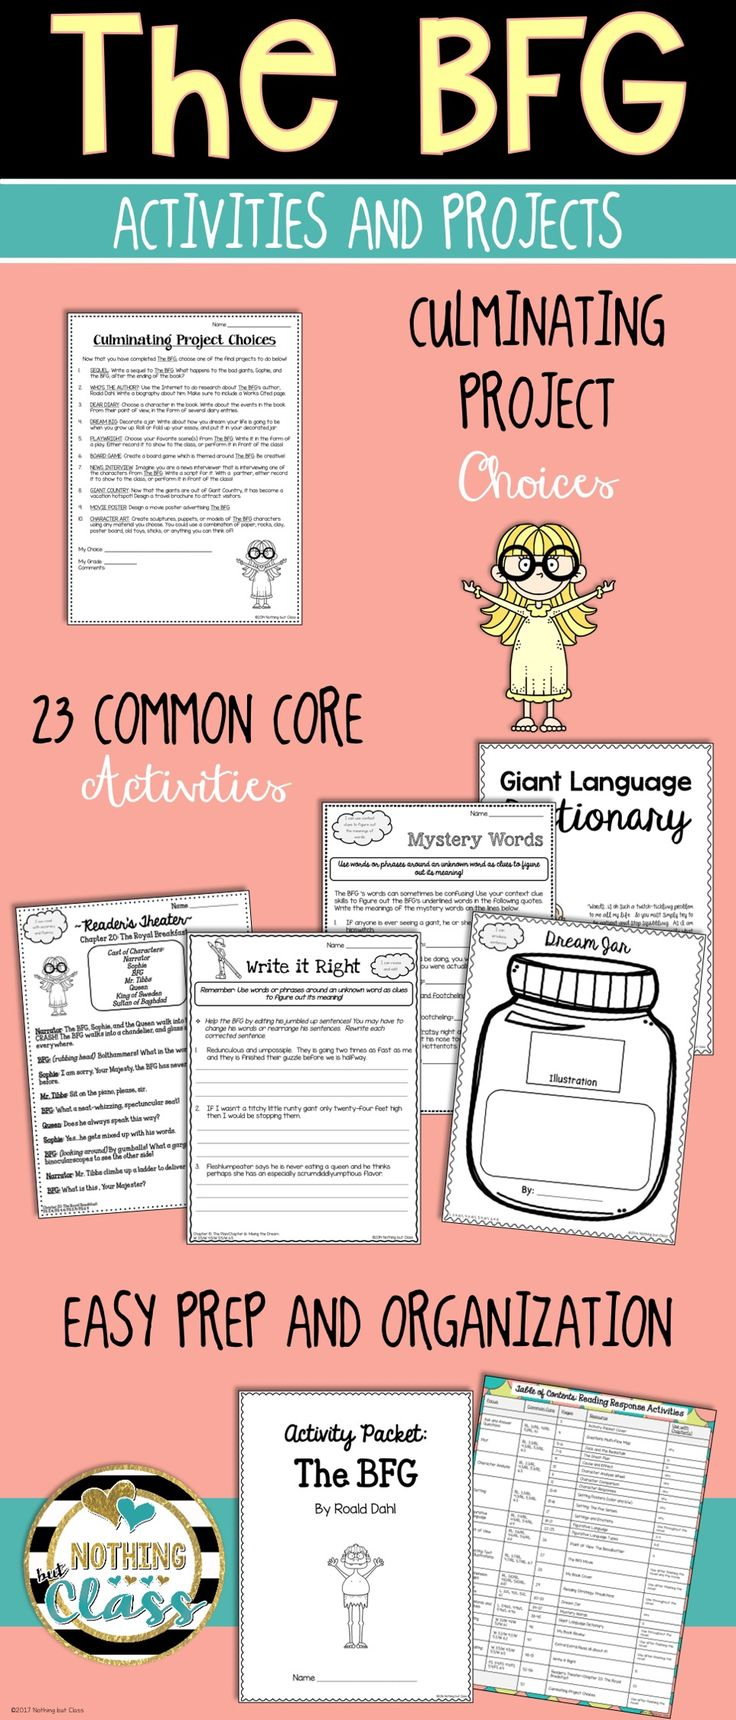 """This activity packet for The BFG, by Roald Dahl, contains 56 pages of creative Common Core-aligned resources. Projects, graphic organizers, and team tasks help you delve deep into this adventurous story.  Focus standards include character analysis, context clues, point of view, figurative language, and more. All Common Core activities have the Common Core code listed in the bottom corner, along with a student-friendly """"I Can"""" statement."""